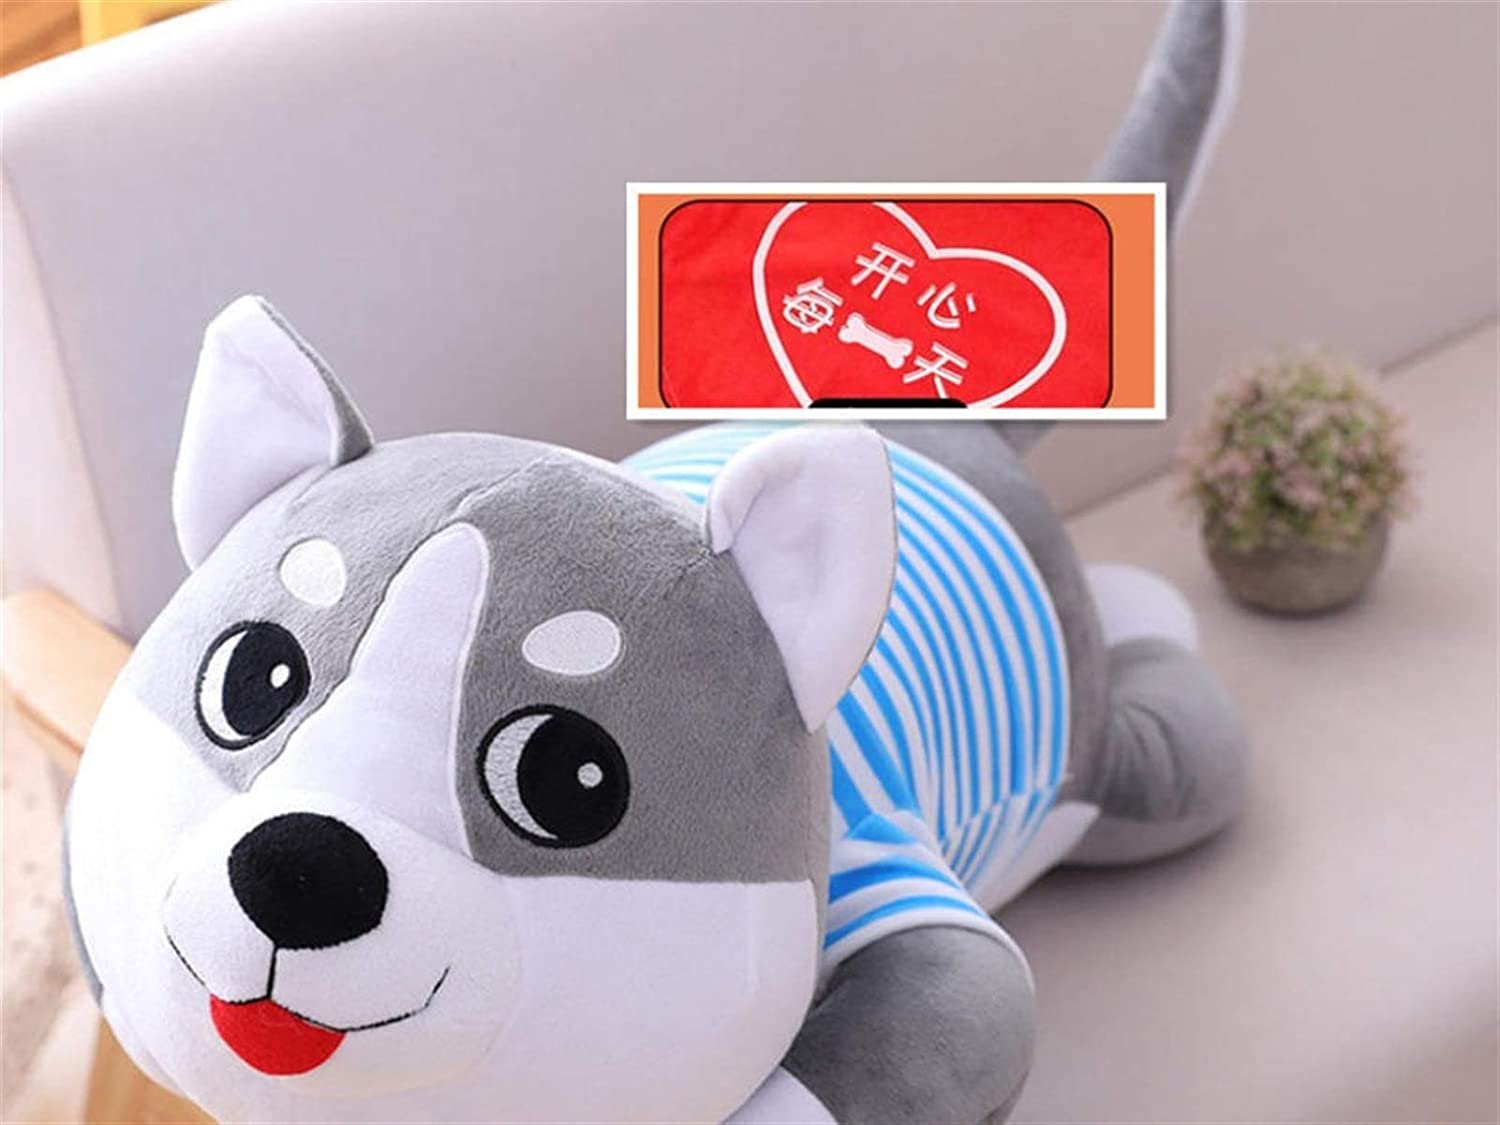 Comfortable and Durable Max Now free shipping 60% OFF Cute Plush Stuffed Toy So Cartoon Animal